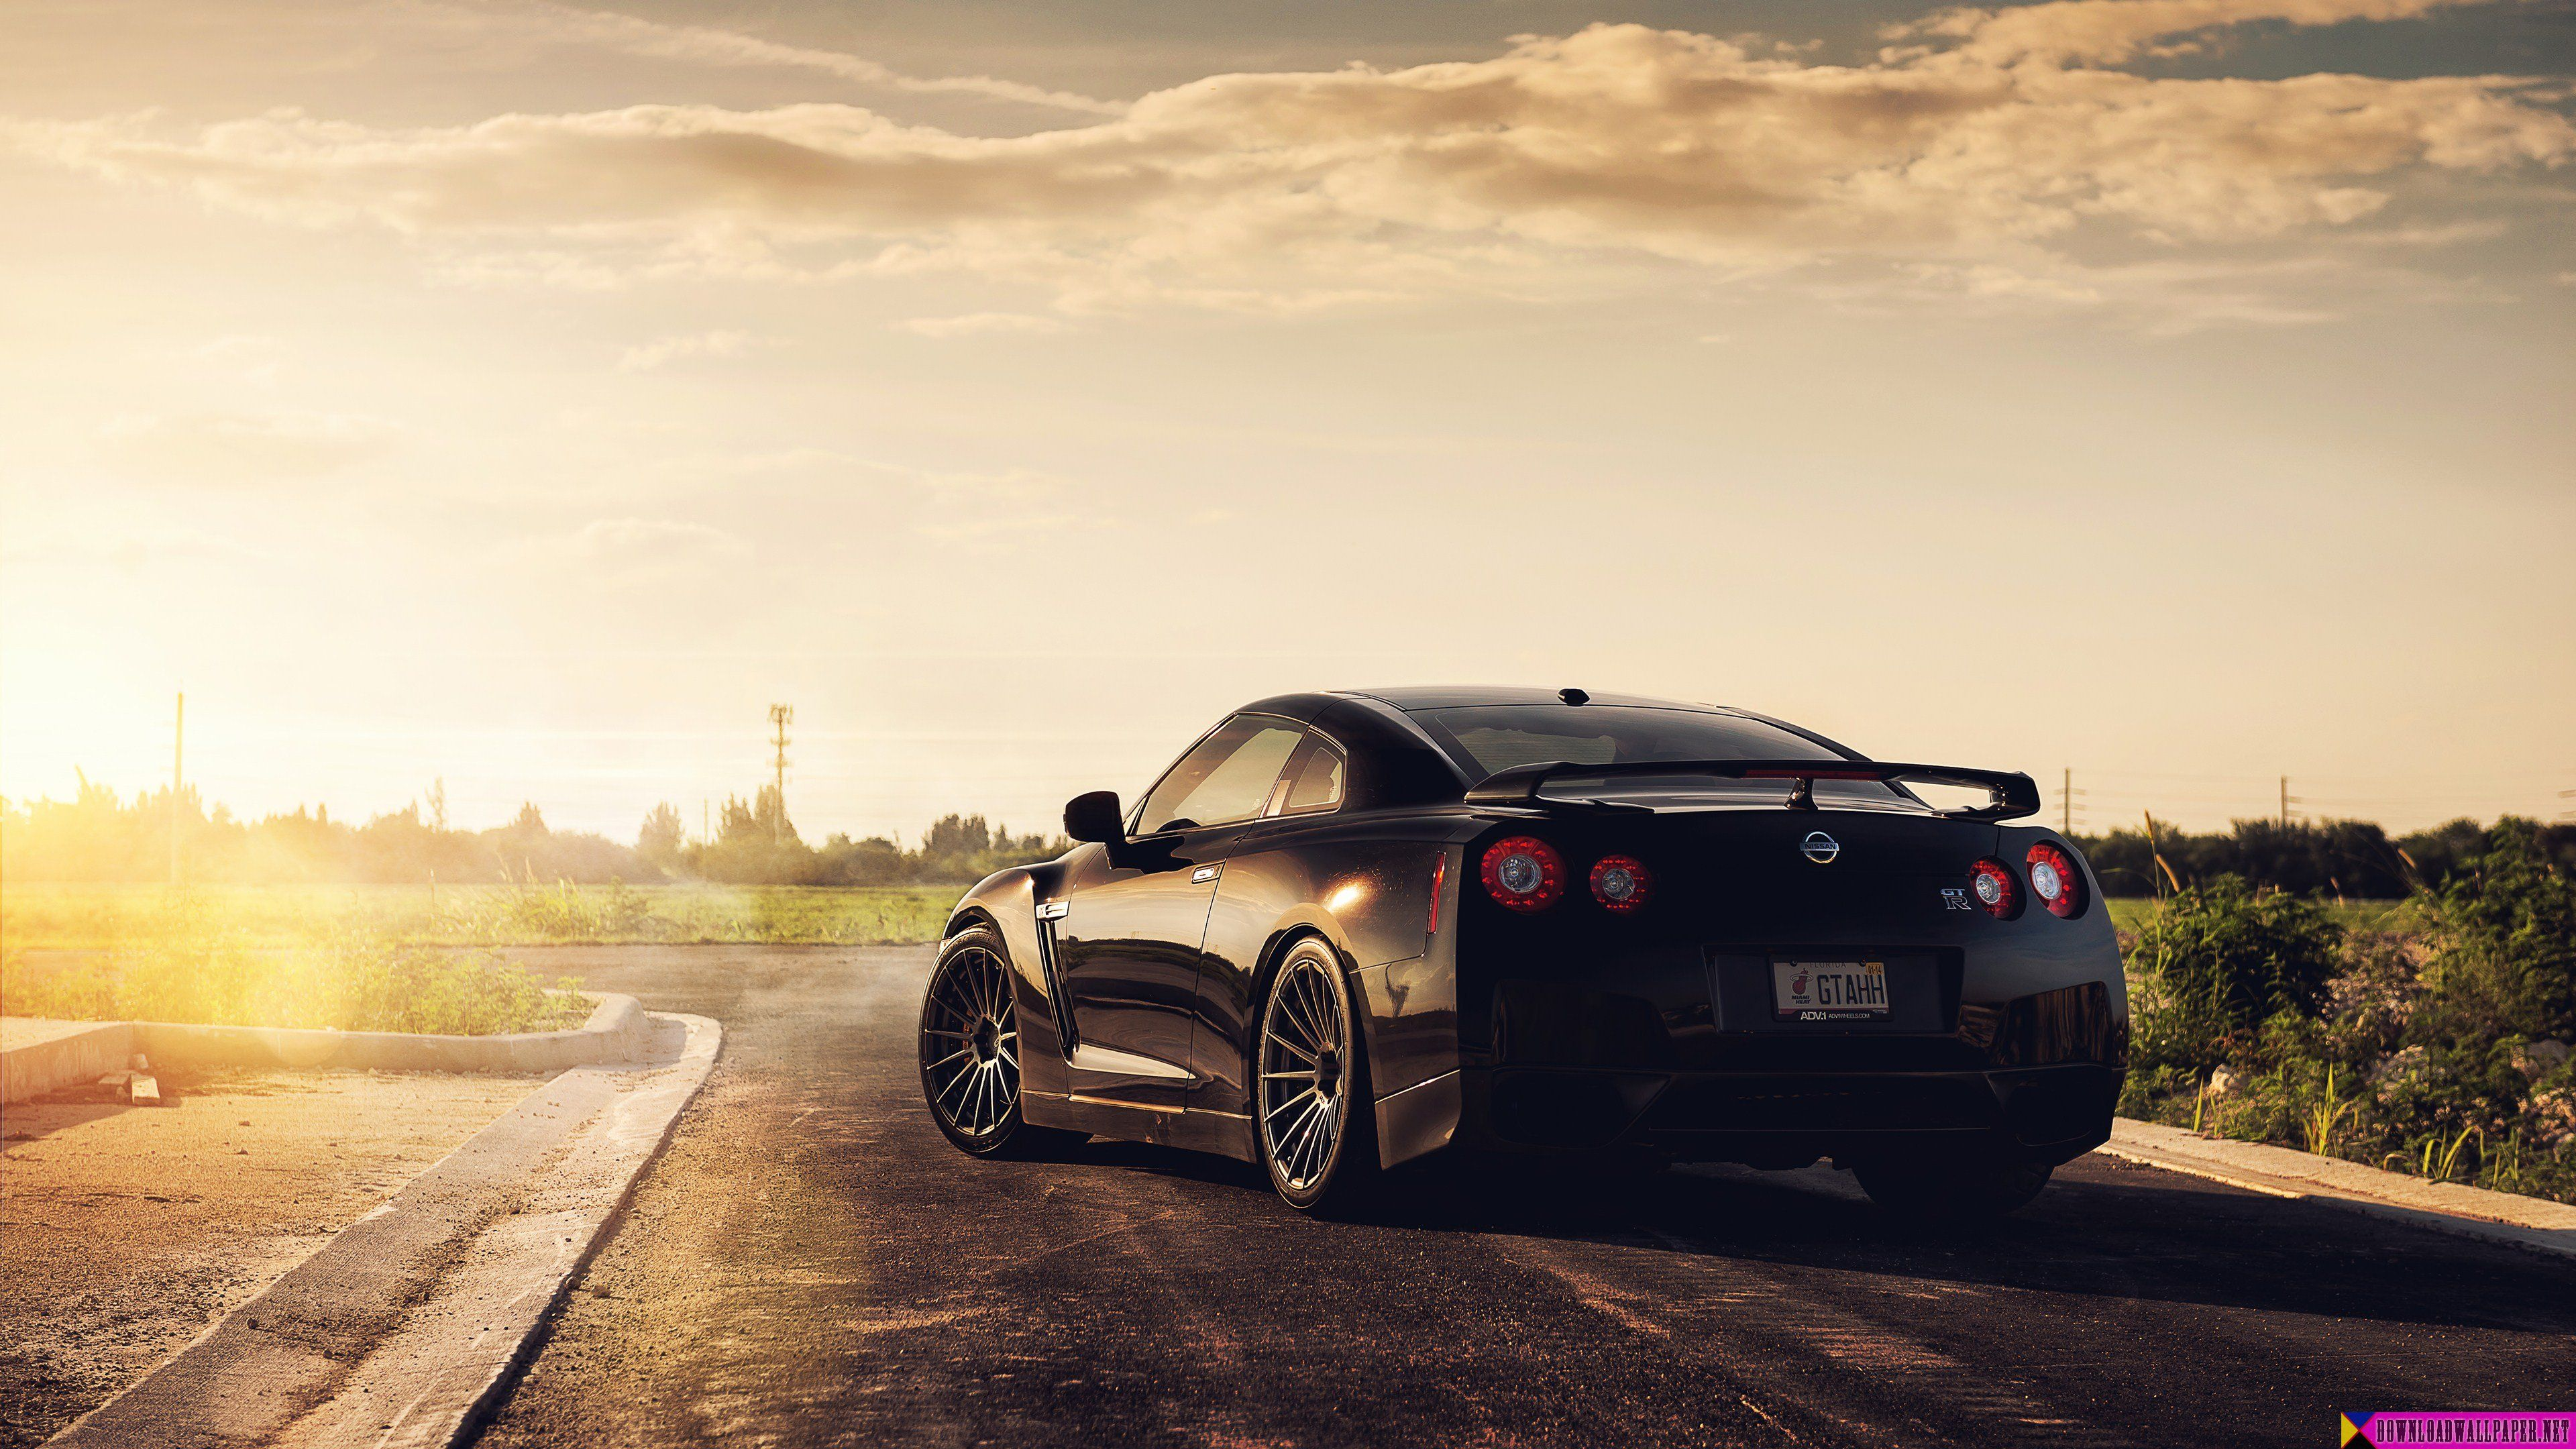 Nissan Gtr 4k Hd Wallpaper Cars Wallpaper Pinterest Cars